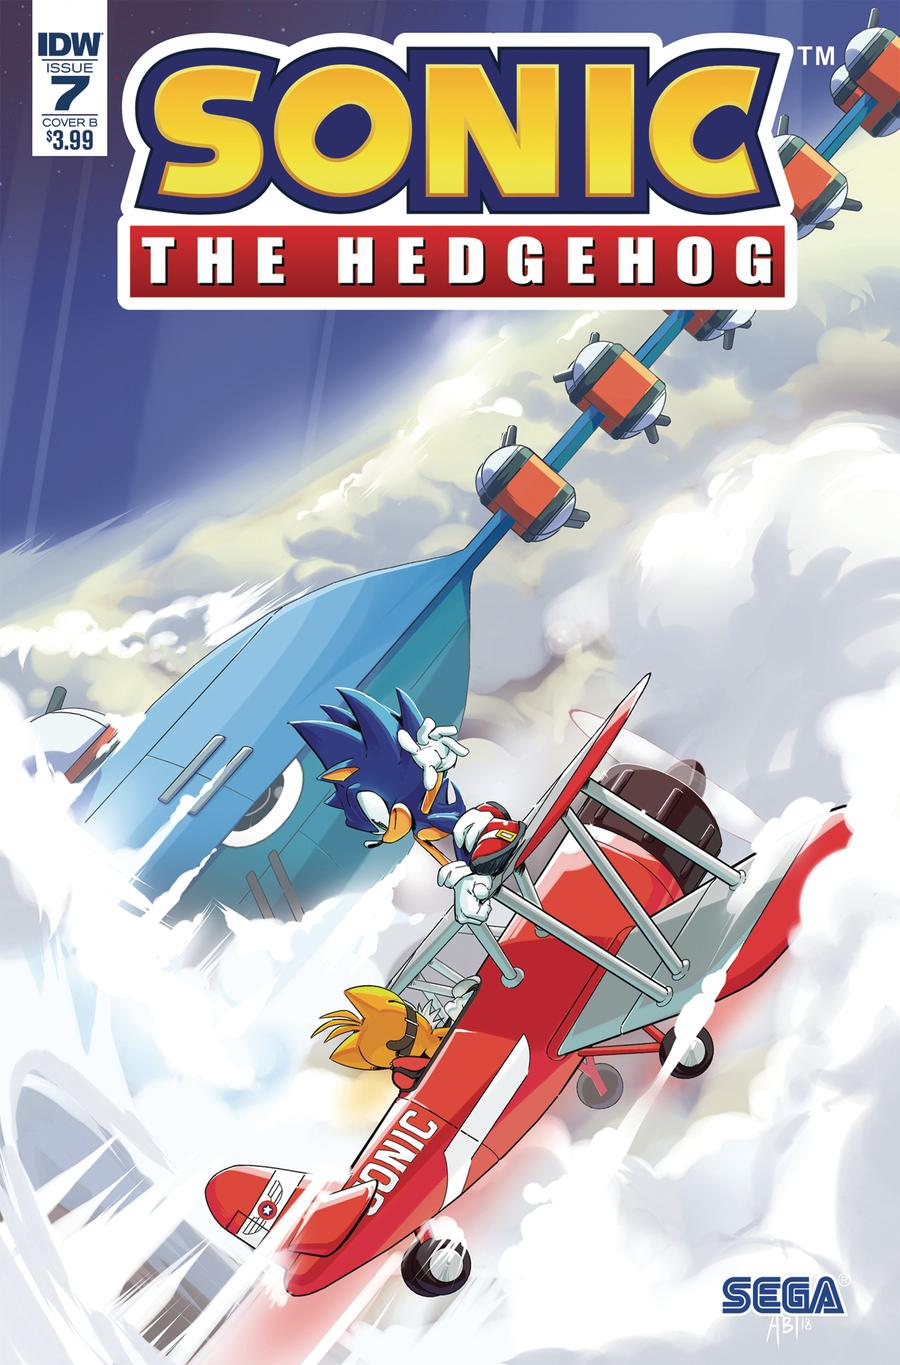 Sonic The Hedgehog Vol 3 #7 Cover B Variant Adam Bryce Thomas Cover